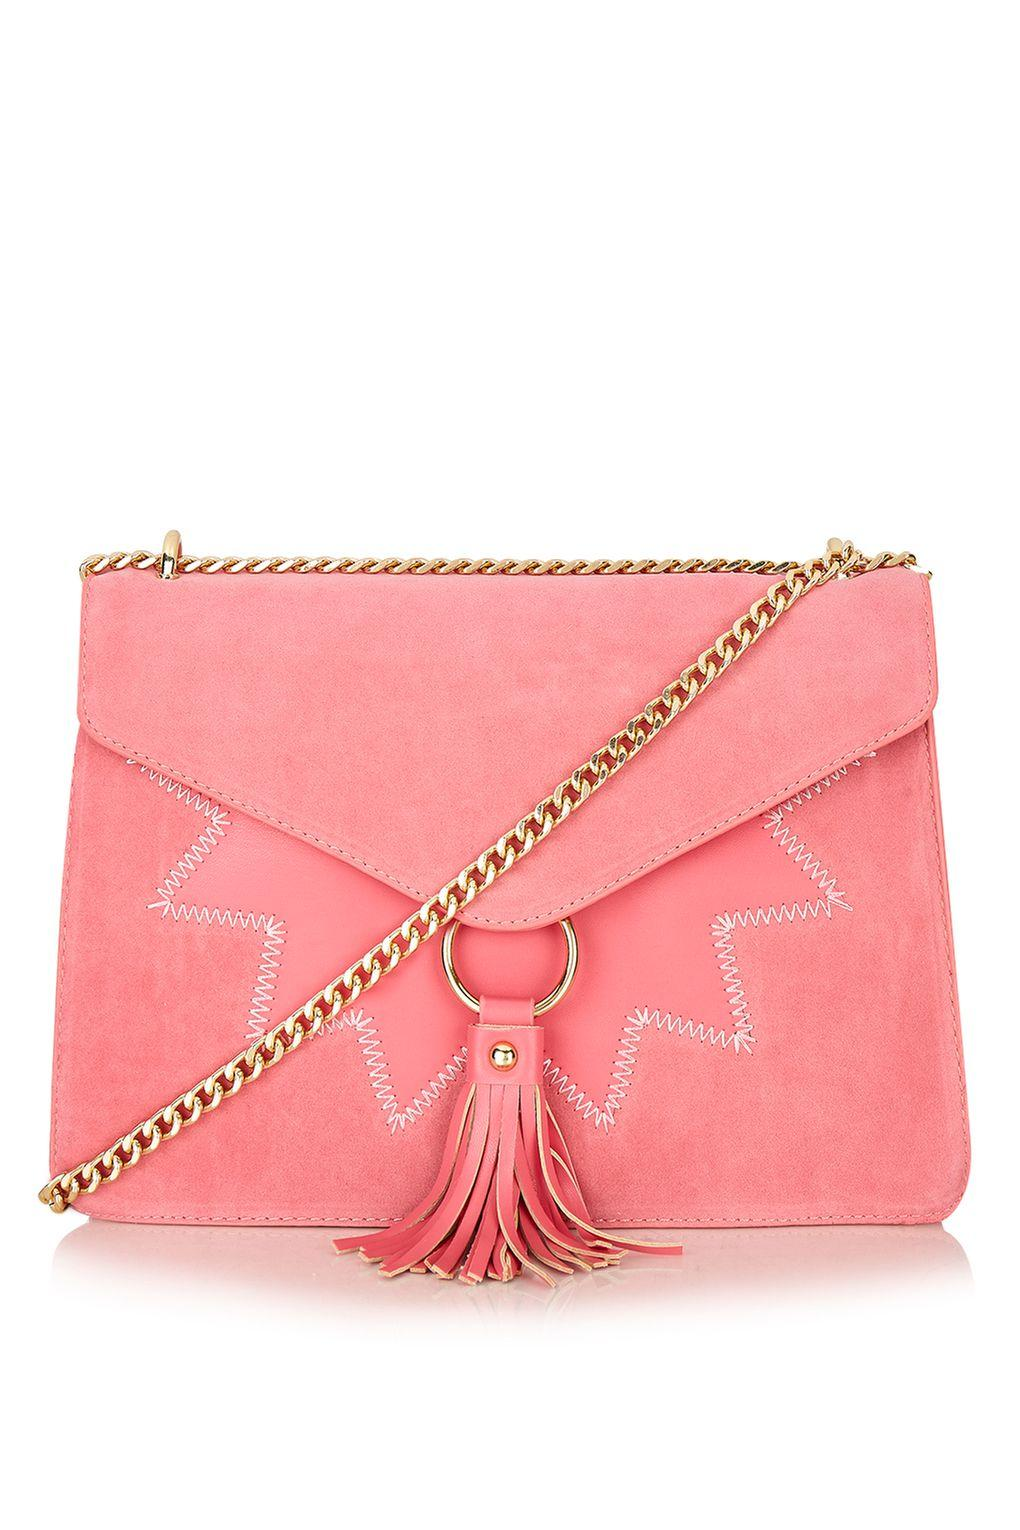 Skinnydip London Star Laureli Cross Body Bag By Skinnydip in Pink